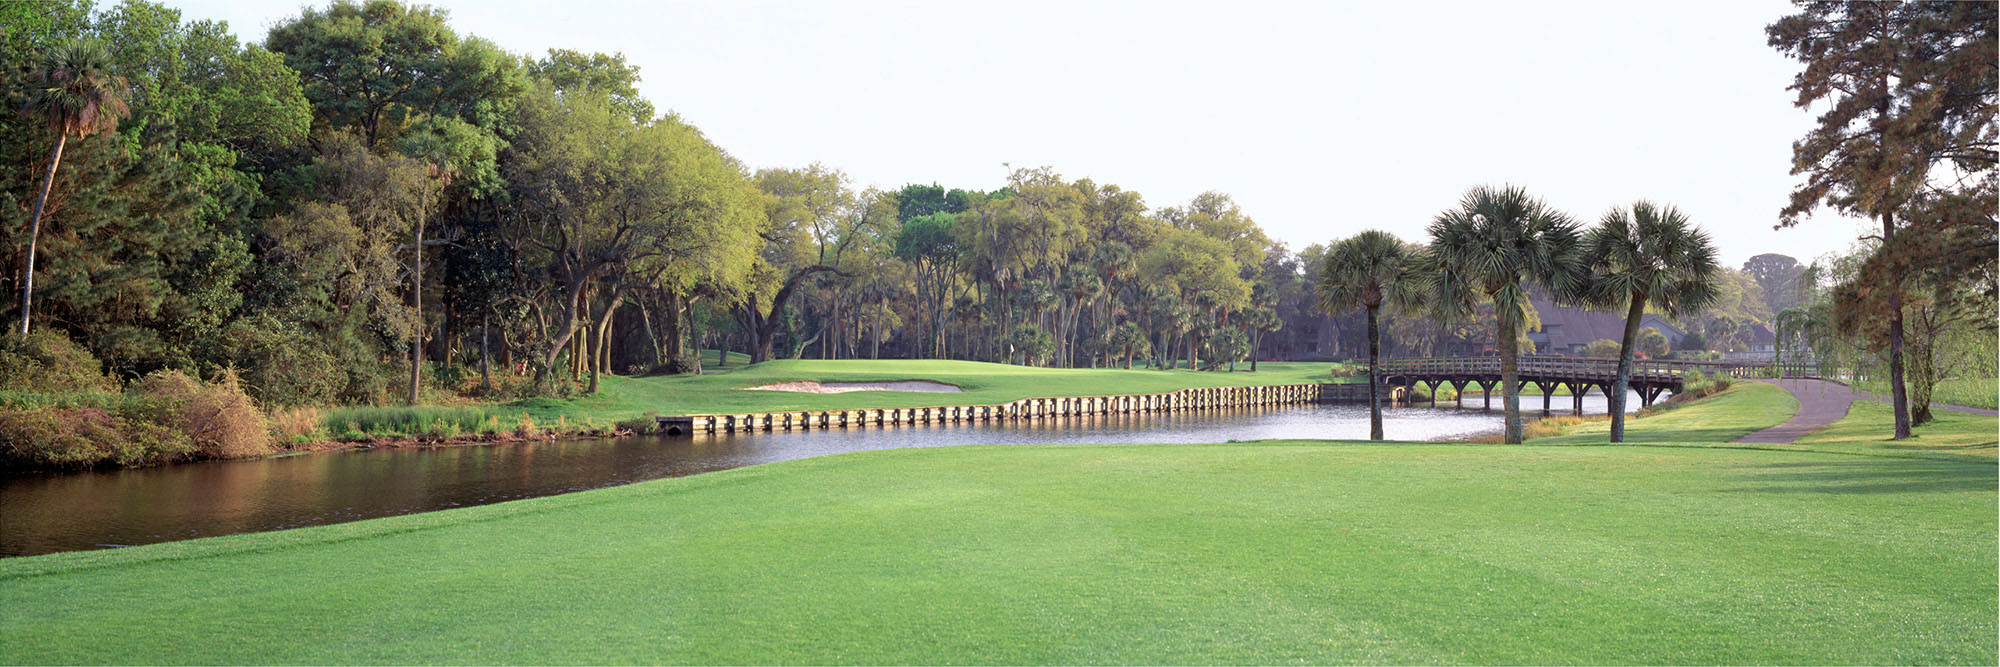 Golf Course Image - Palmetto Dunes No. 17 Fazio